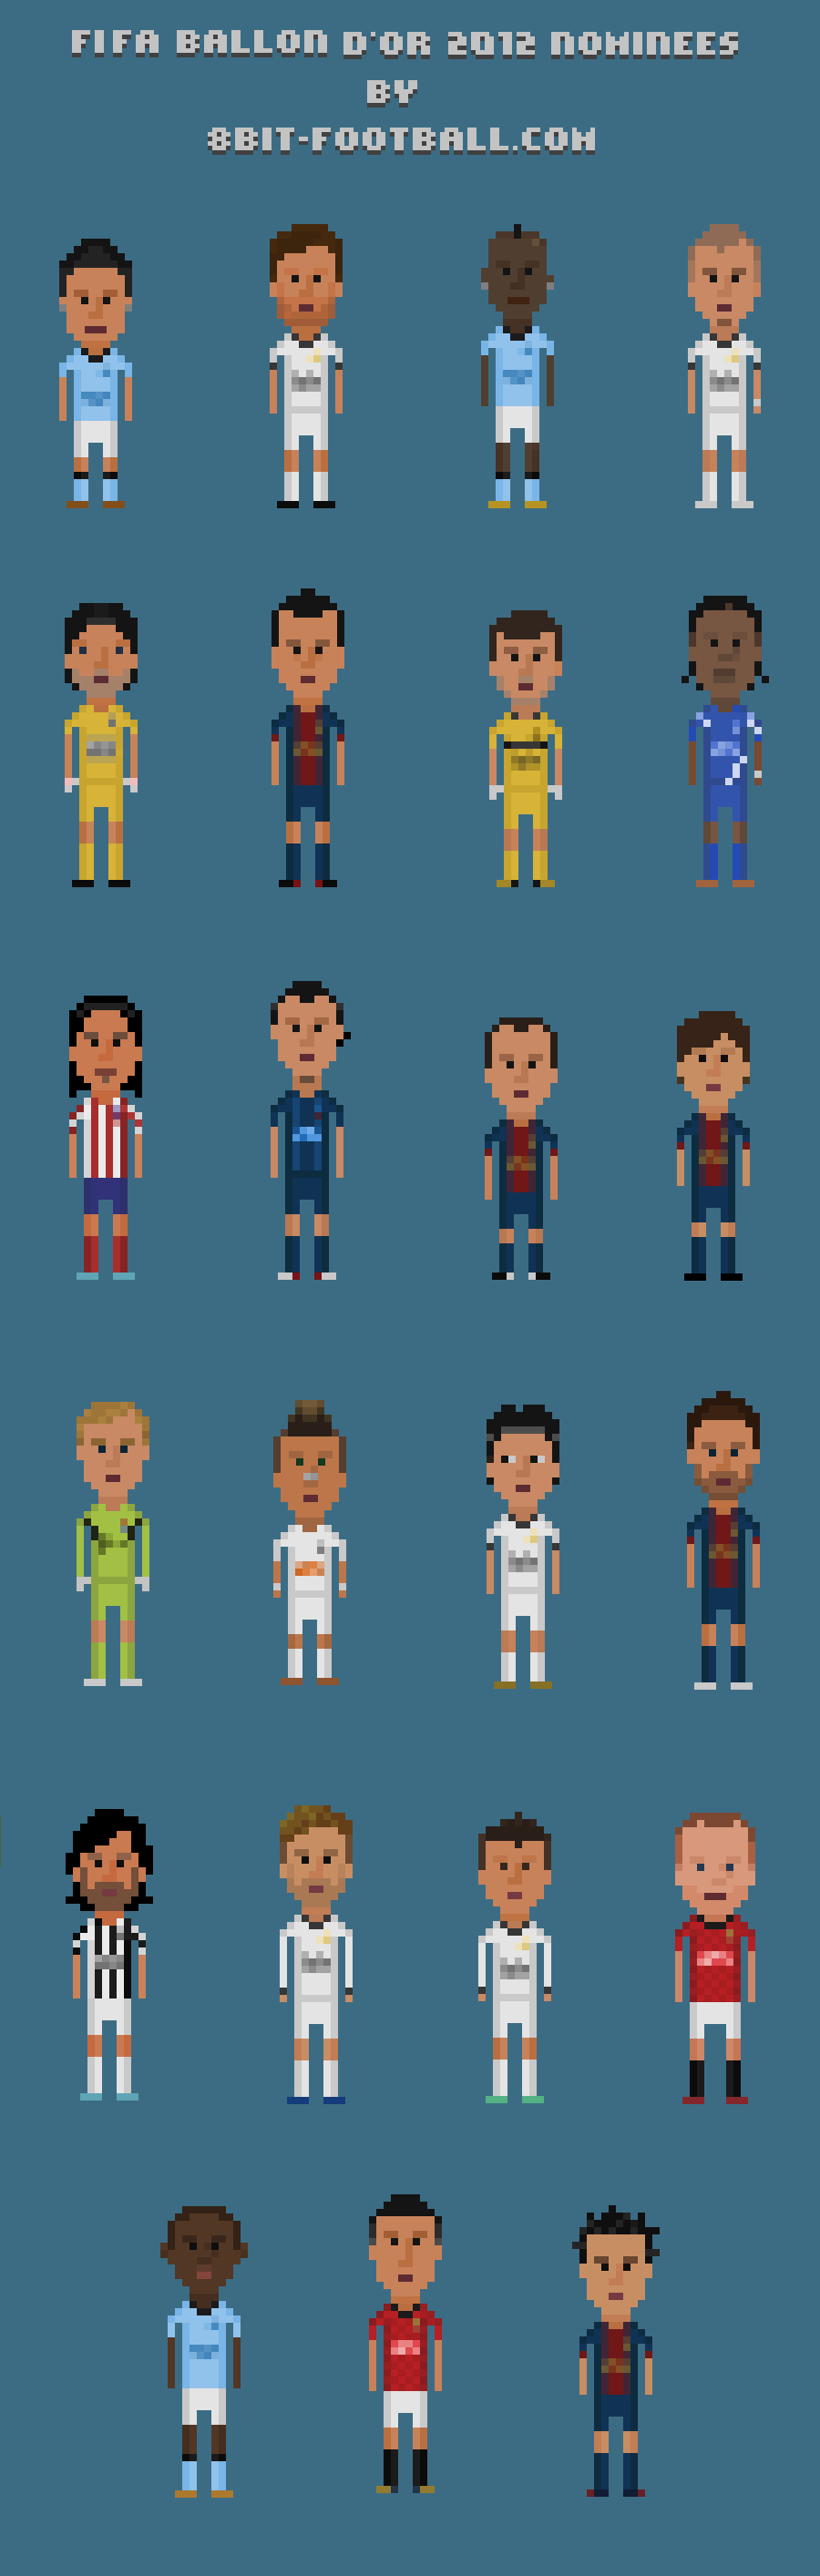 8bit Football Football In Pixel Art